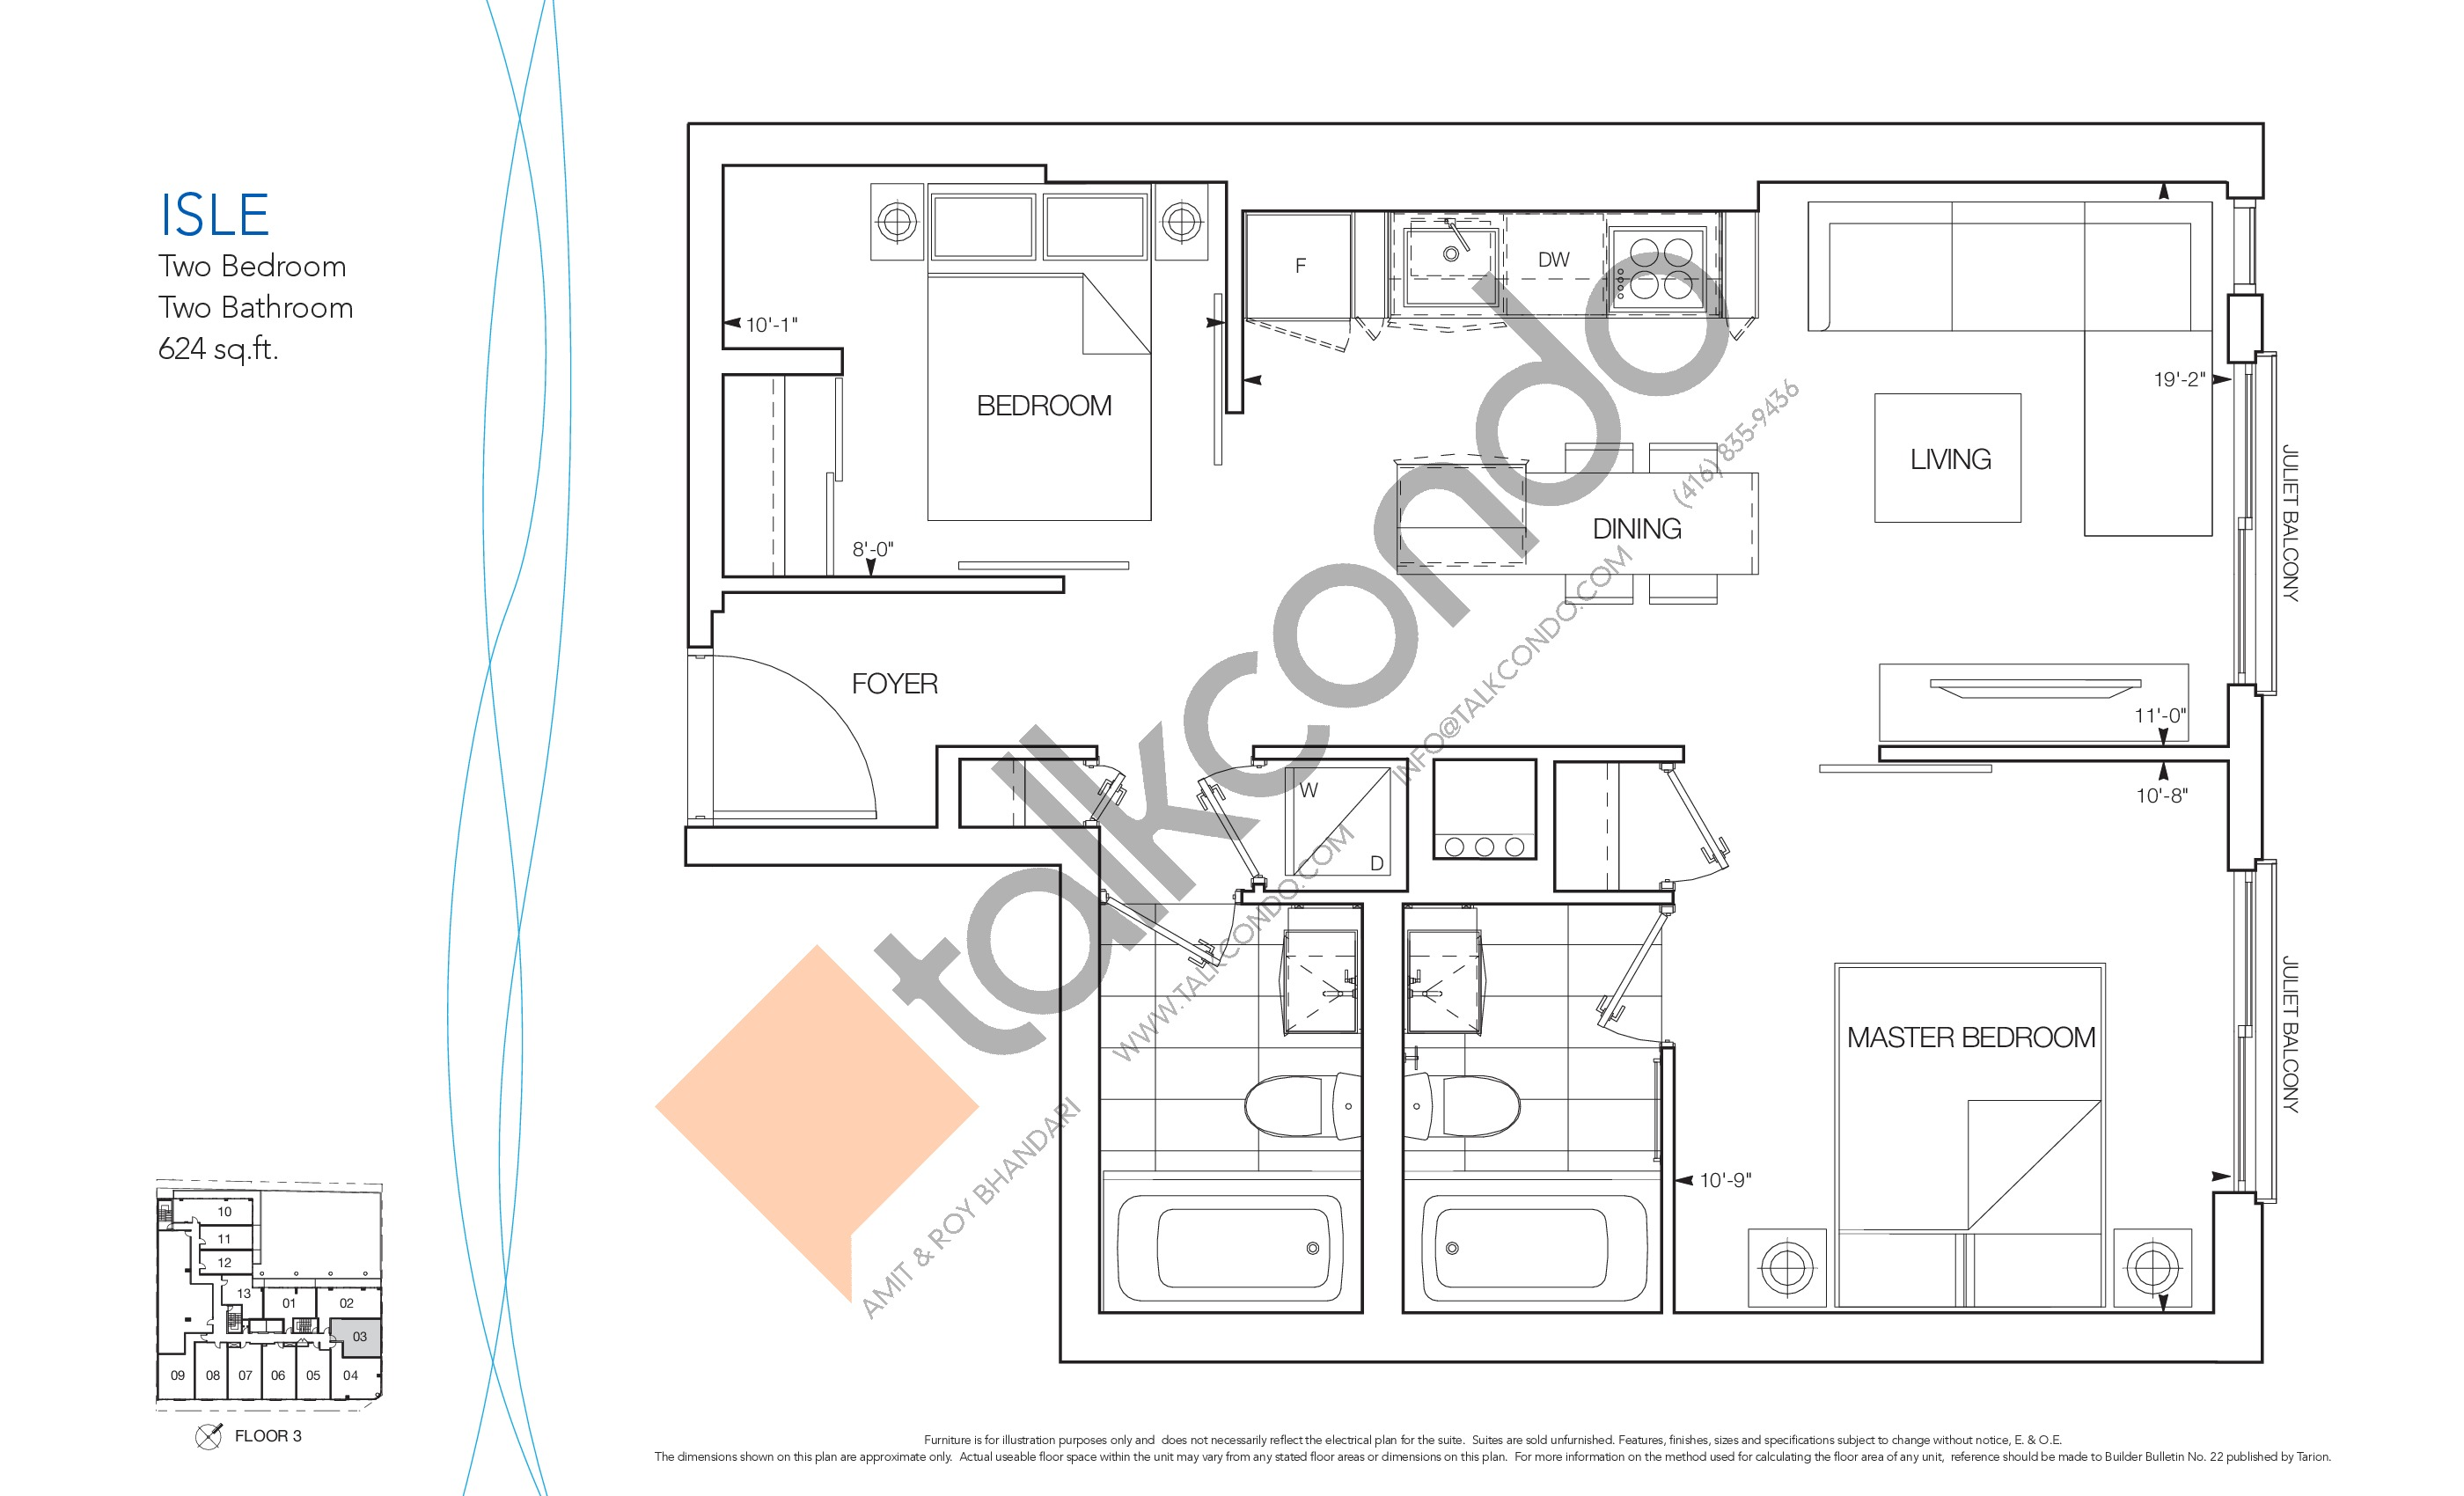 Isle Floor Plan at Nautique Lakefront Residences - 624 sq.ft